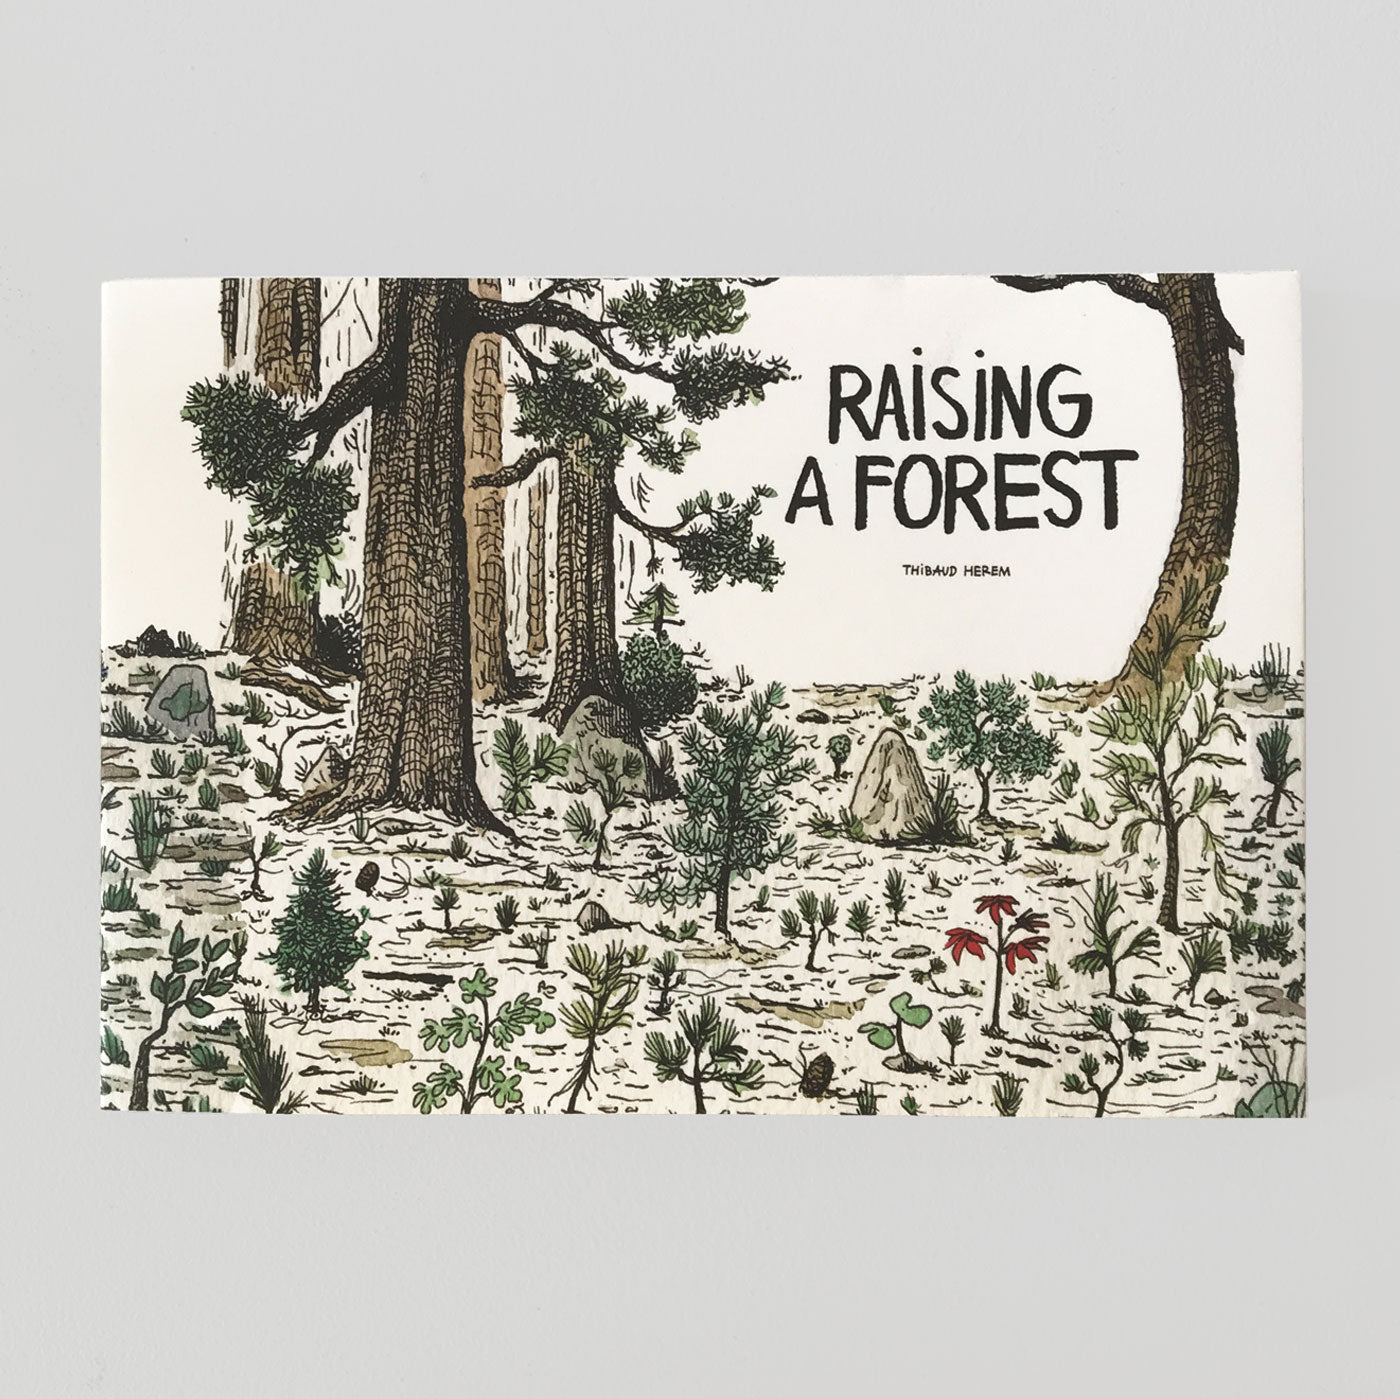 Raising a Forest - Thibaud Herem